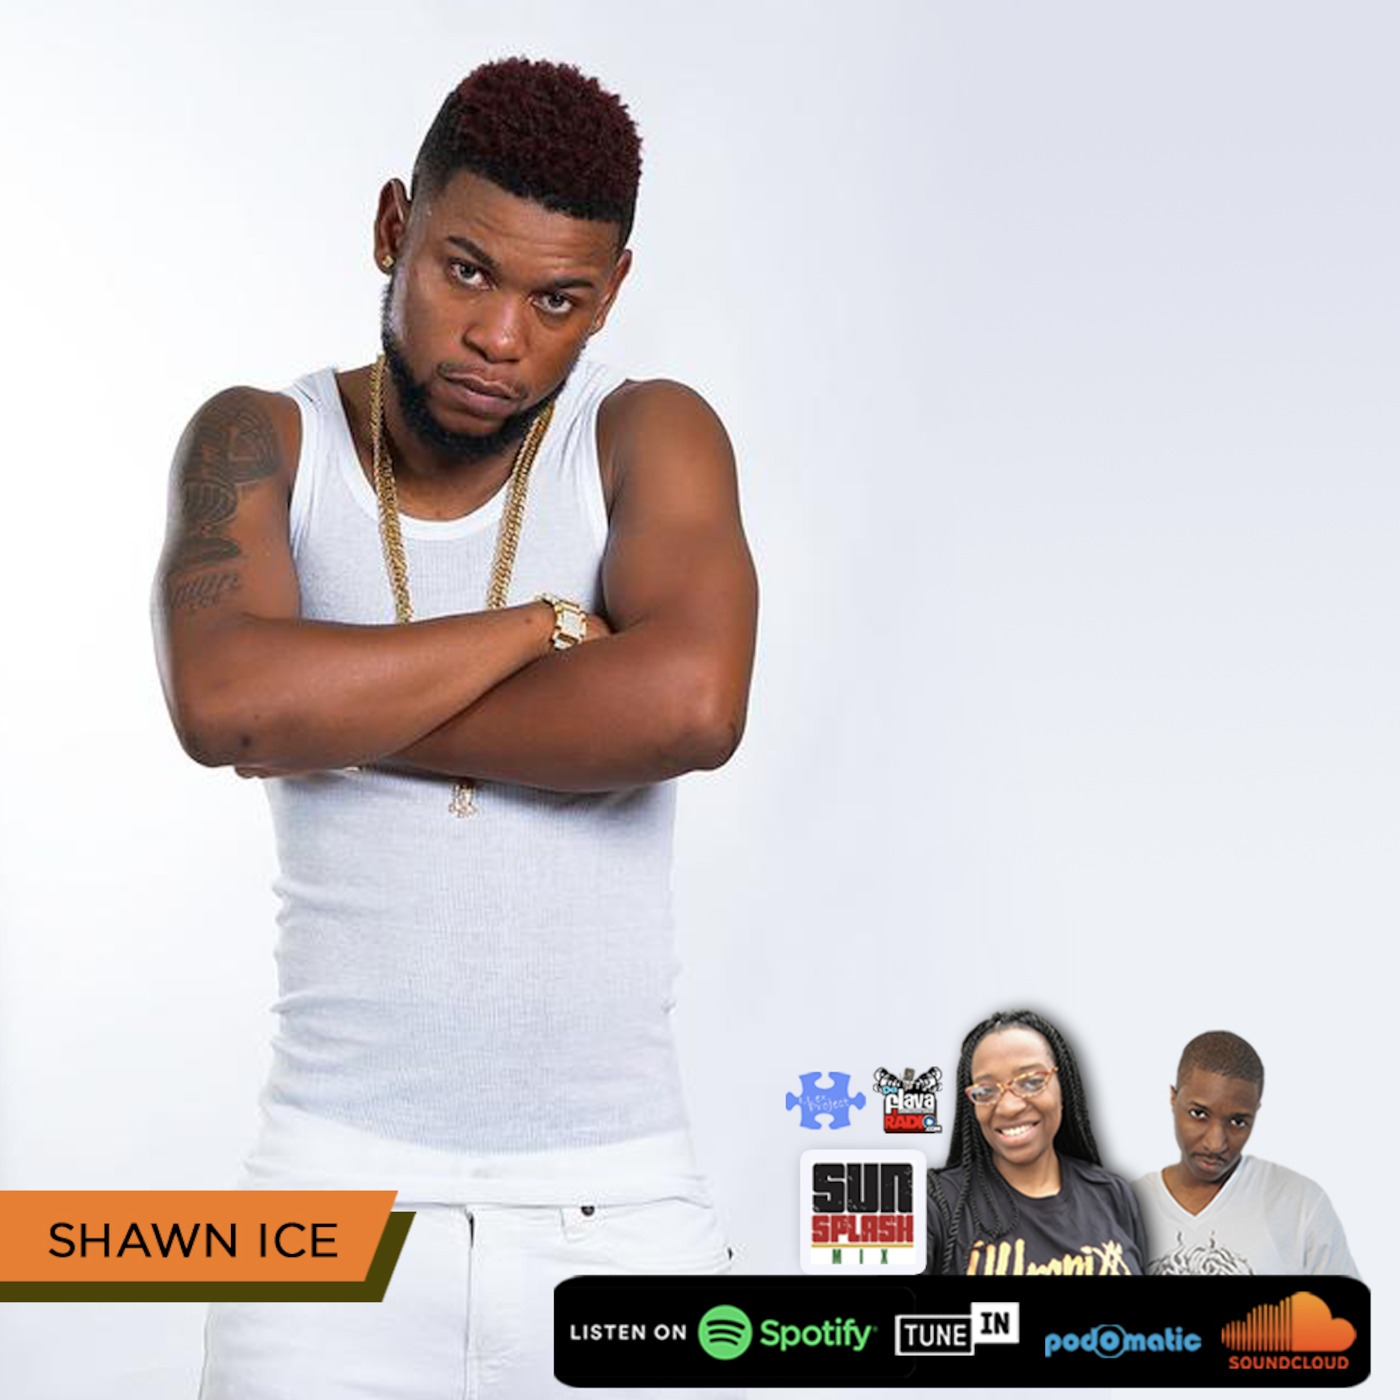 Shawn Ice 2019 Interview Sunsplash Mix With Jah Prince & Selecta